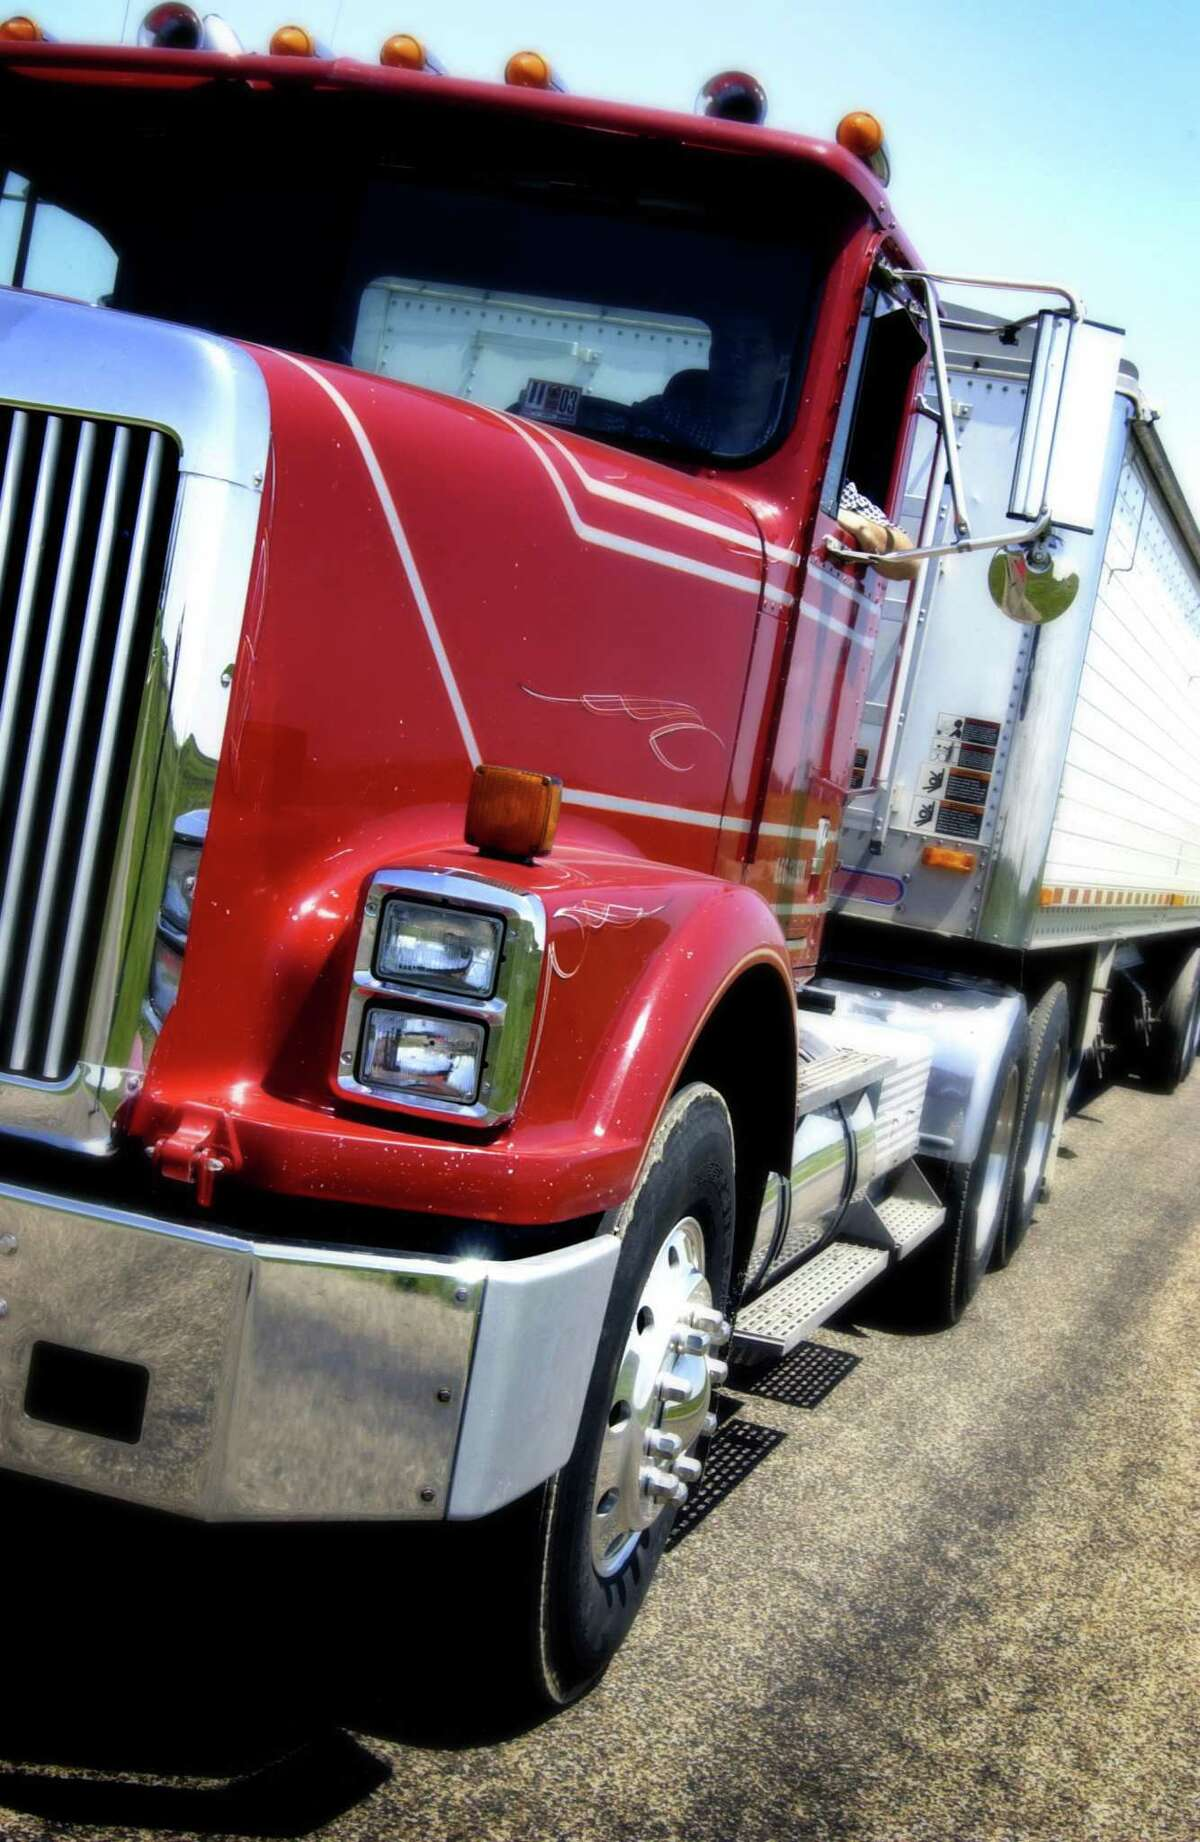 Gov. Ned Lamont is proposing a new tax on the heaviest trucks that drive through Connecticut, in a plan aimed at raising $90 million a year.